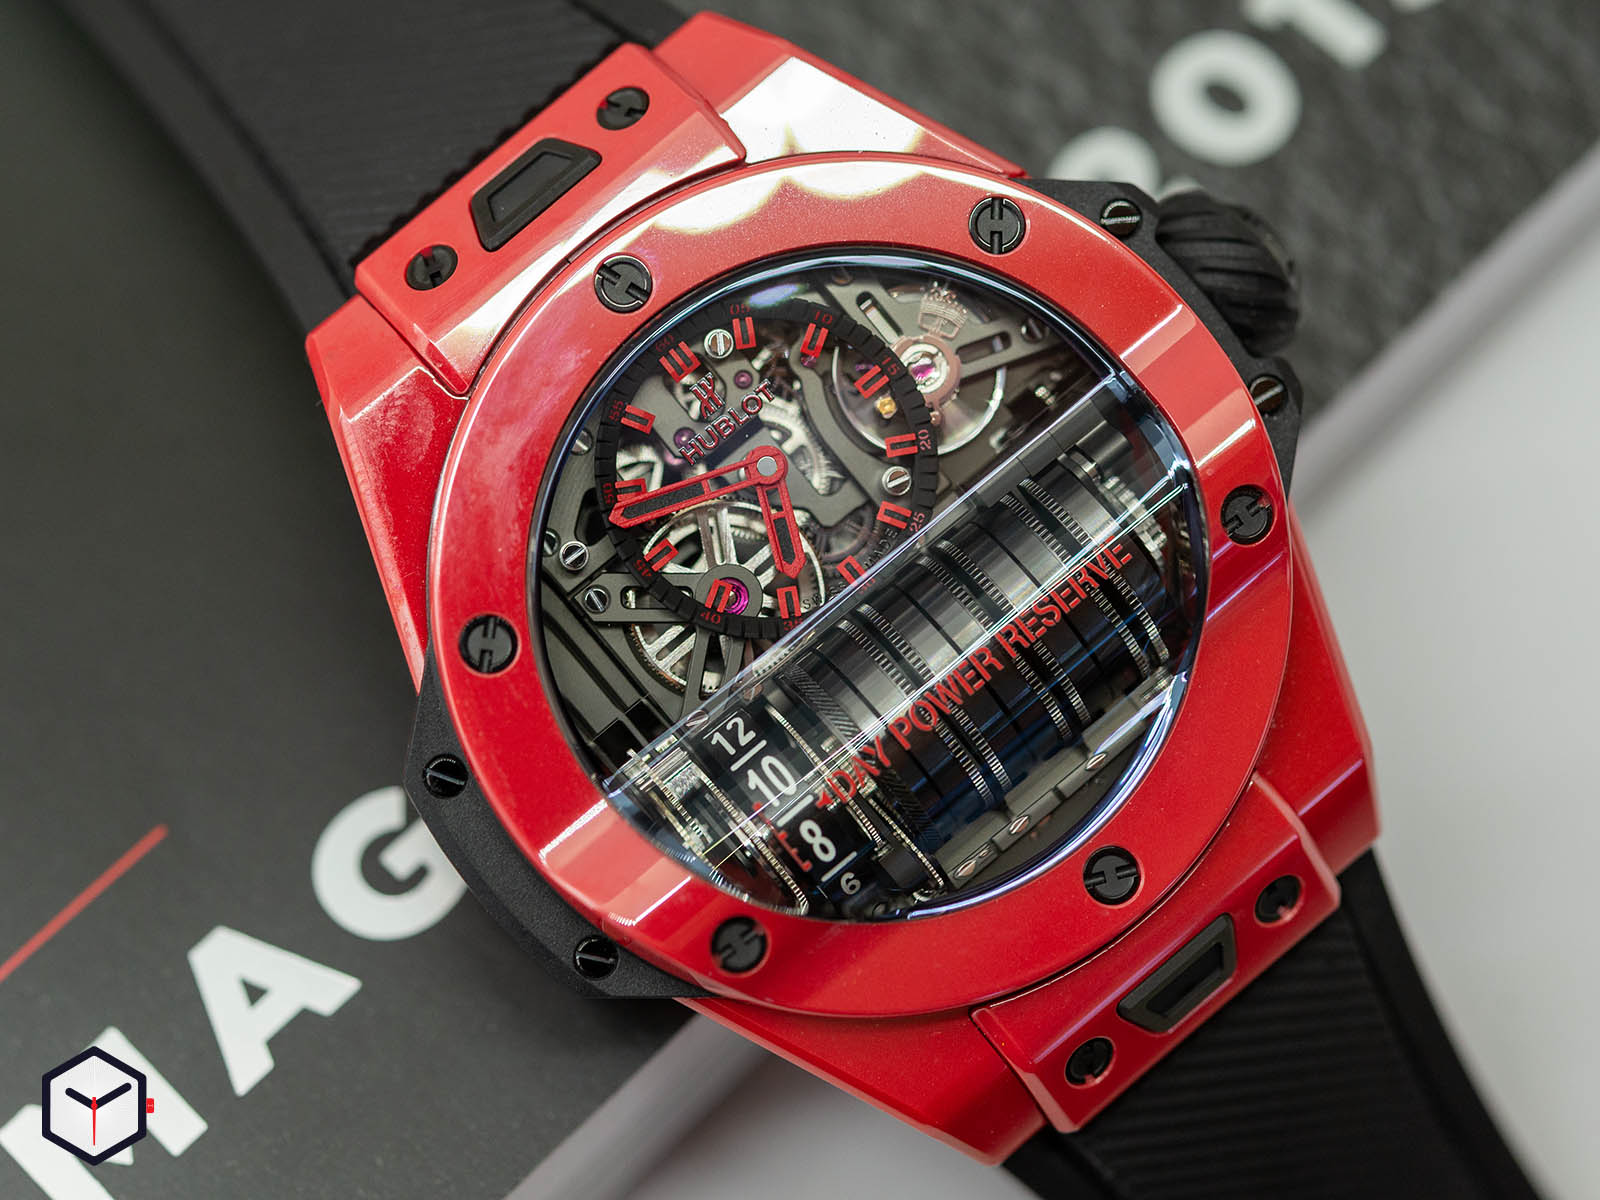 911-cf-0113-rx-hublot-big-bang-mp-11-red-magic-1.jpg